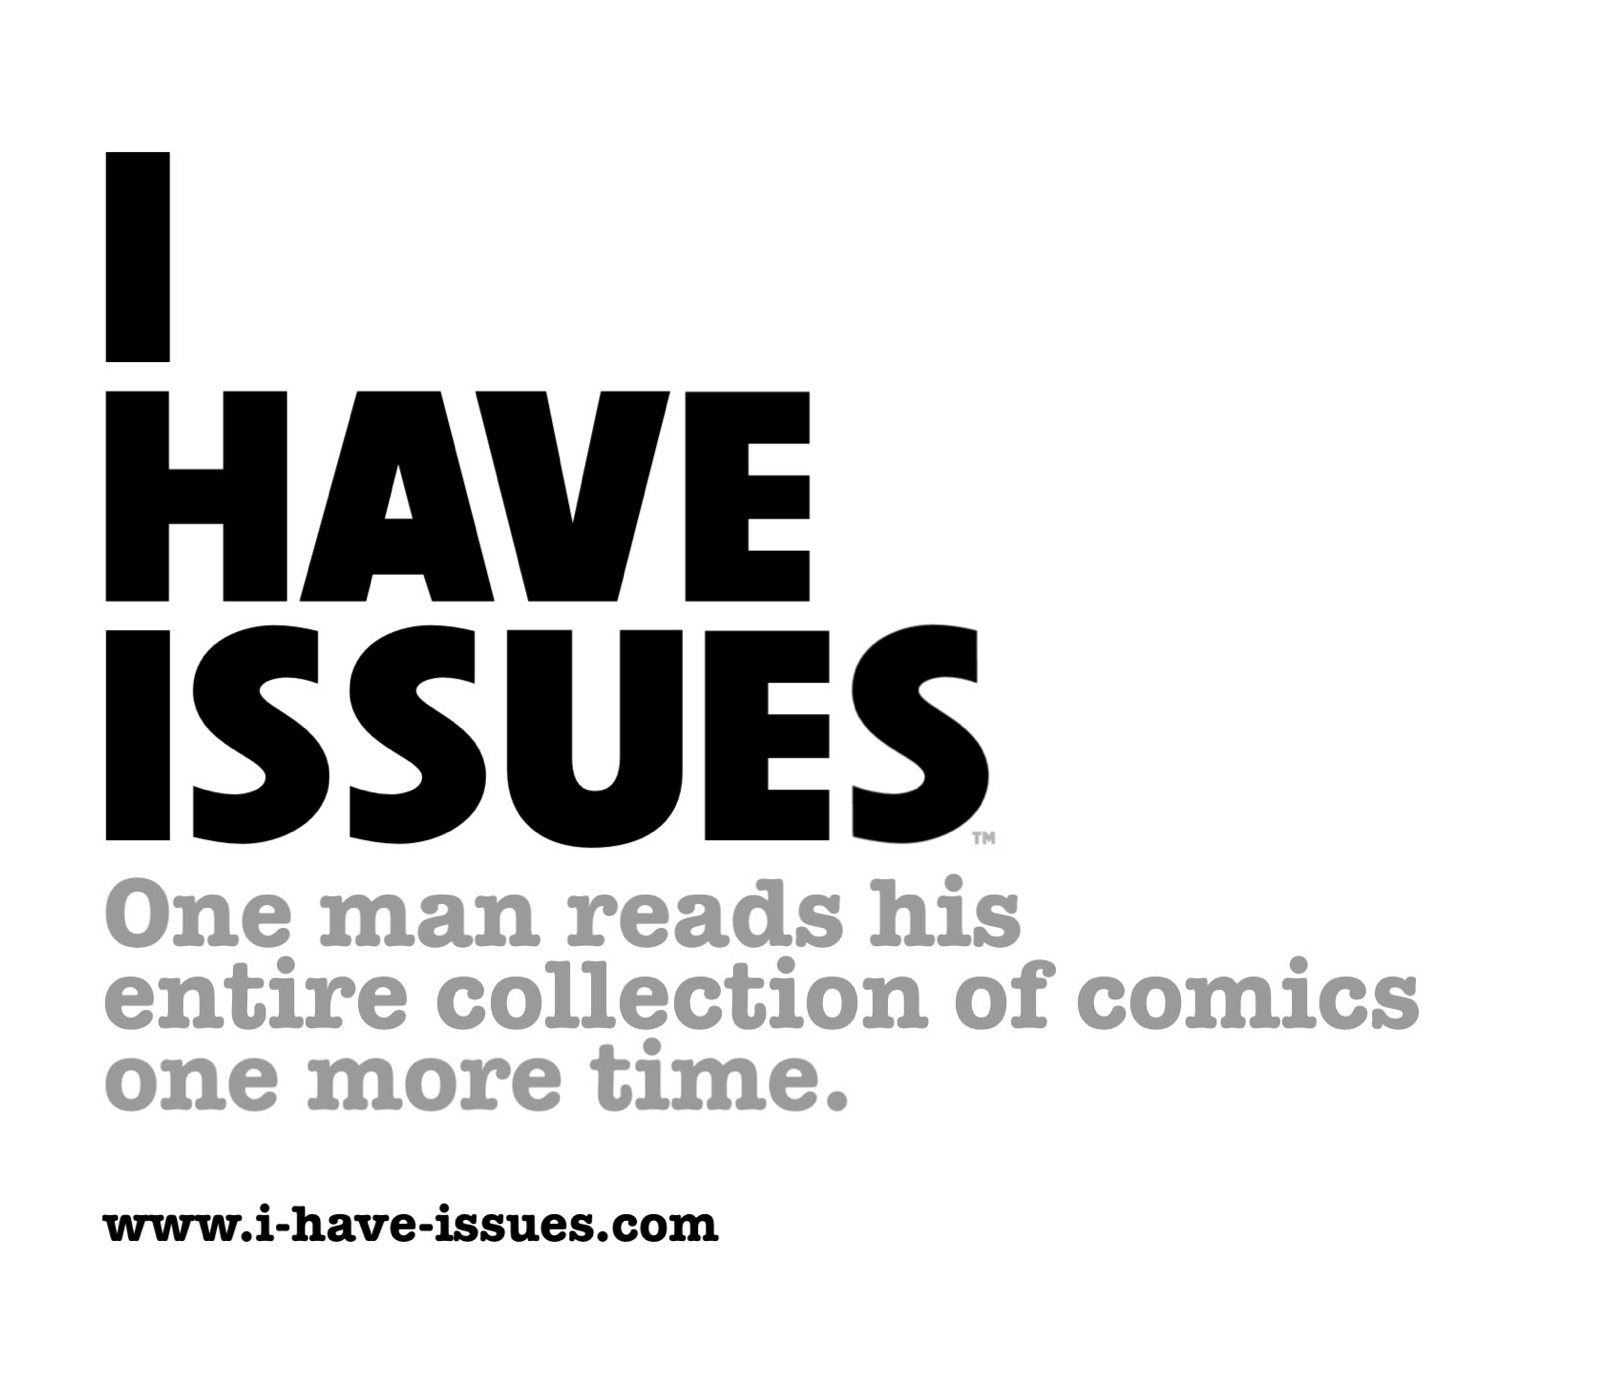 I Have Issues —One man reads his entire collection of comics one more time.